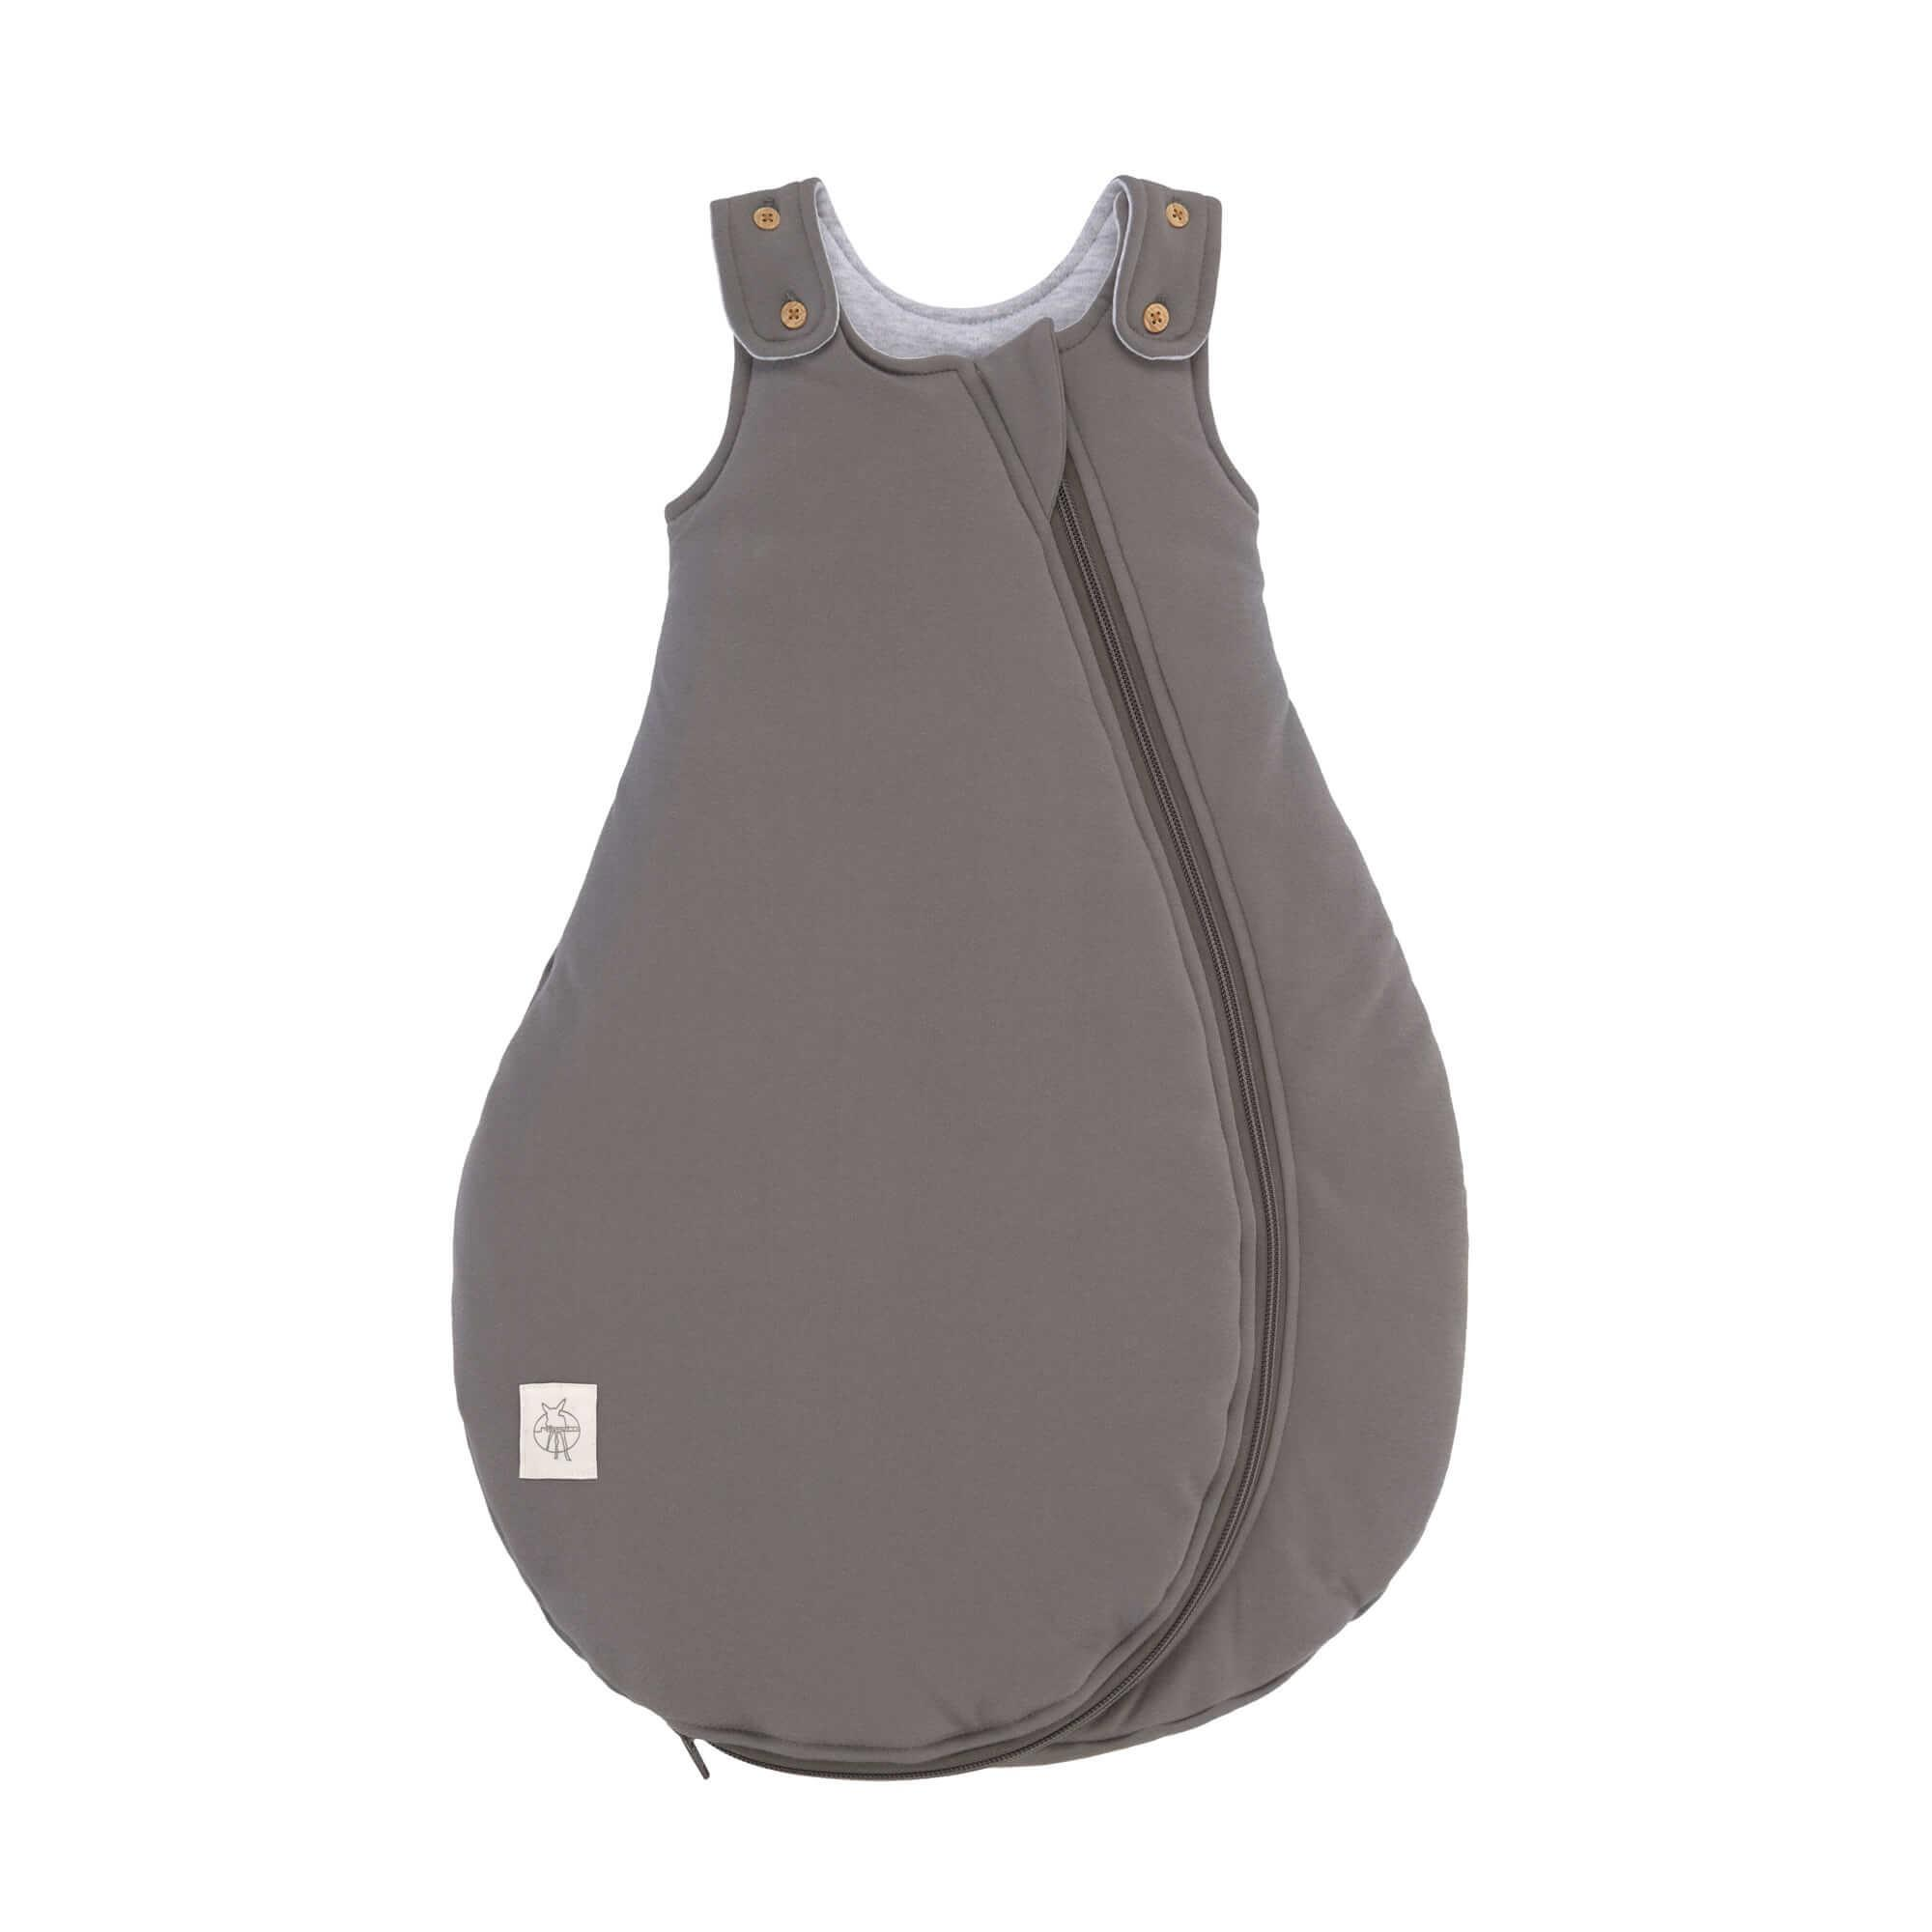 Lassig - Baby Sleeping Bag anthracite, 62/68 2-6M, all season edition